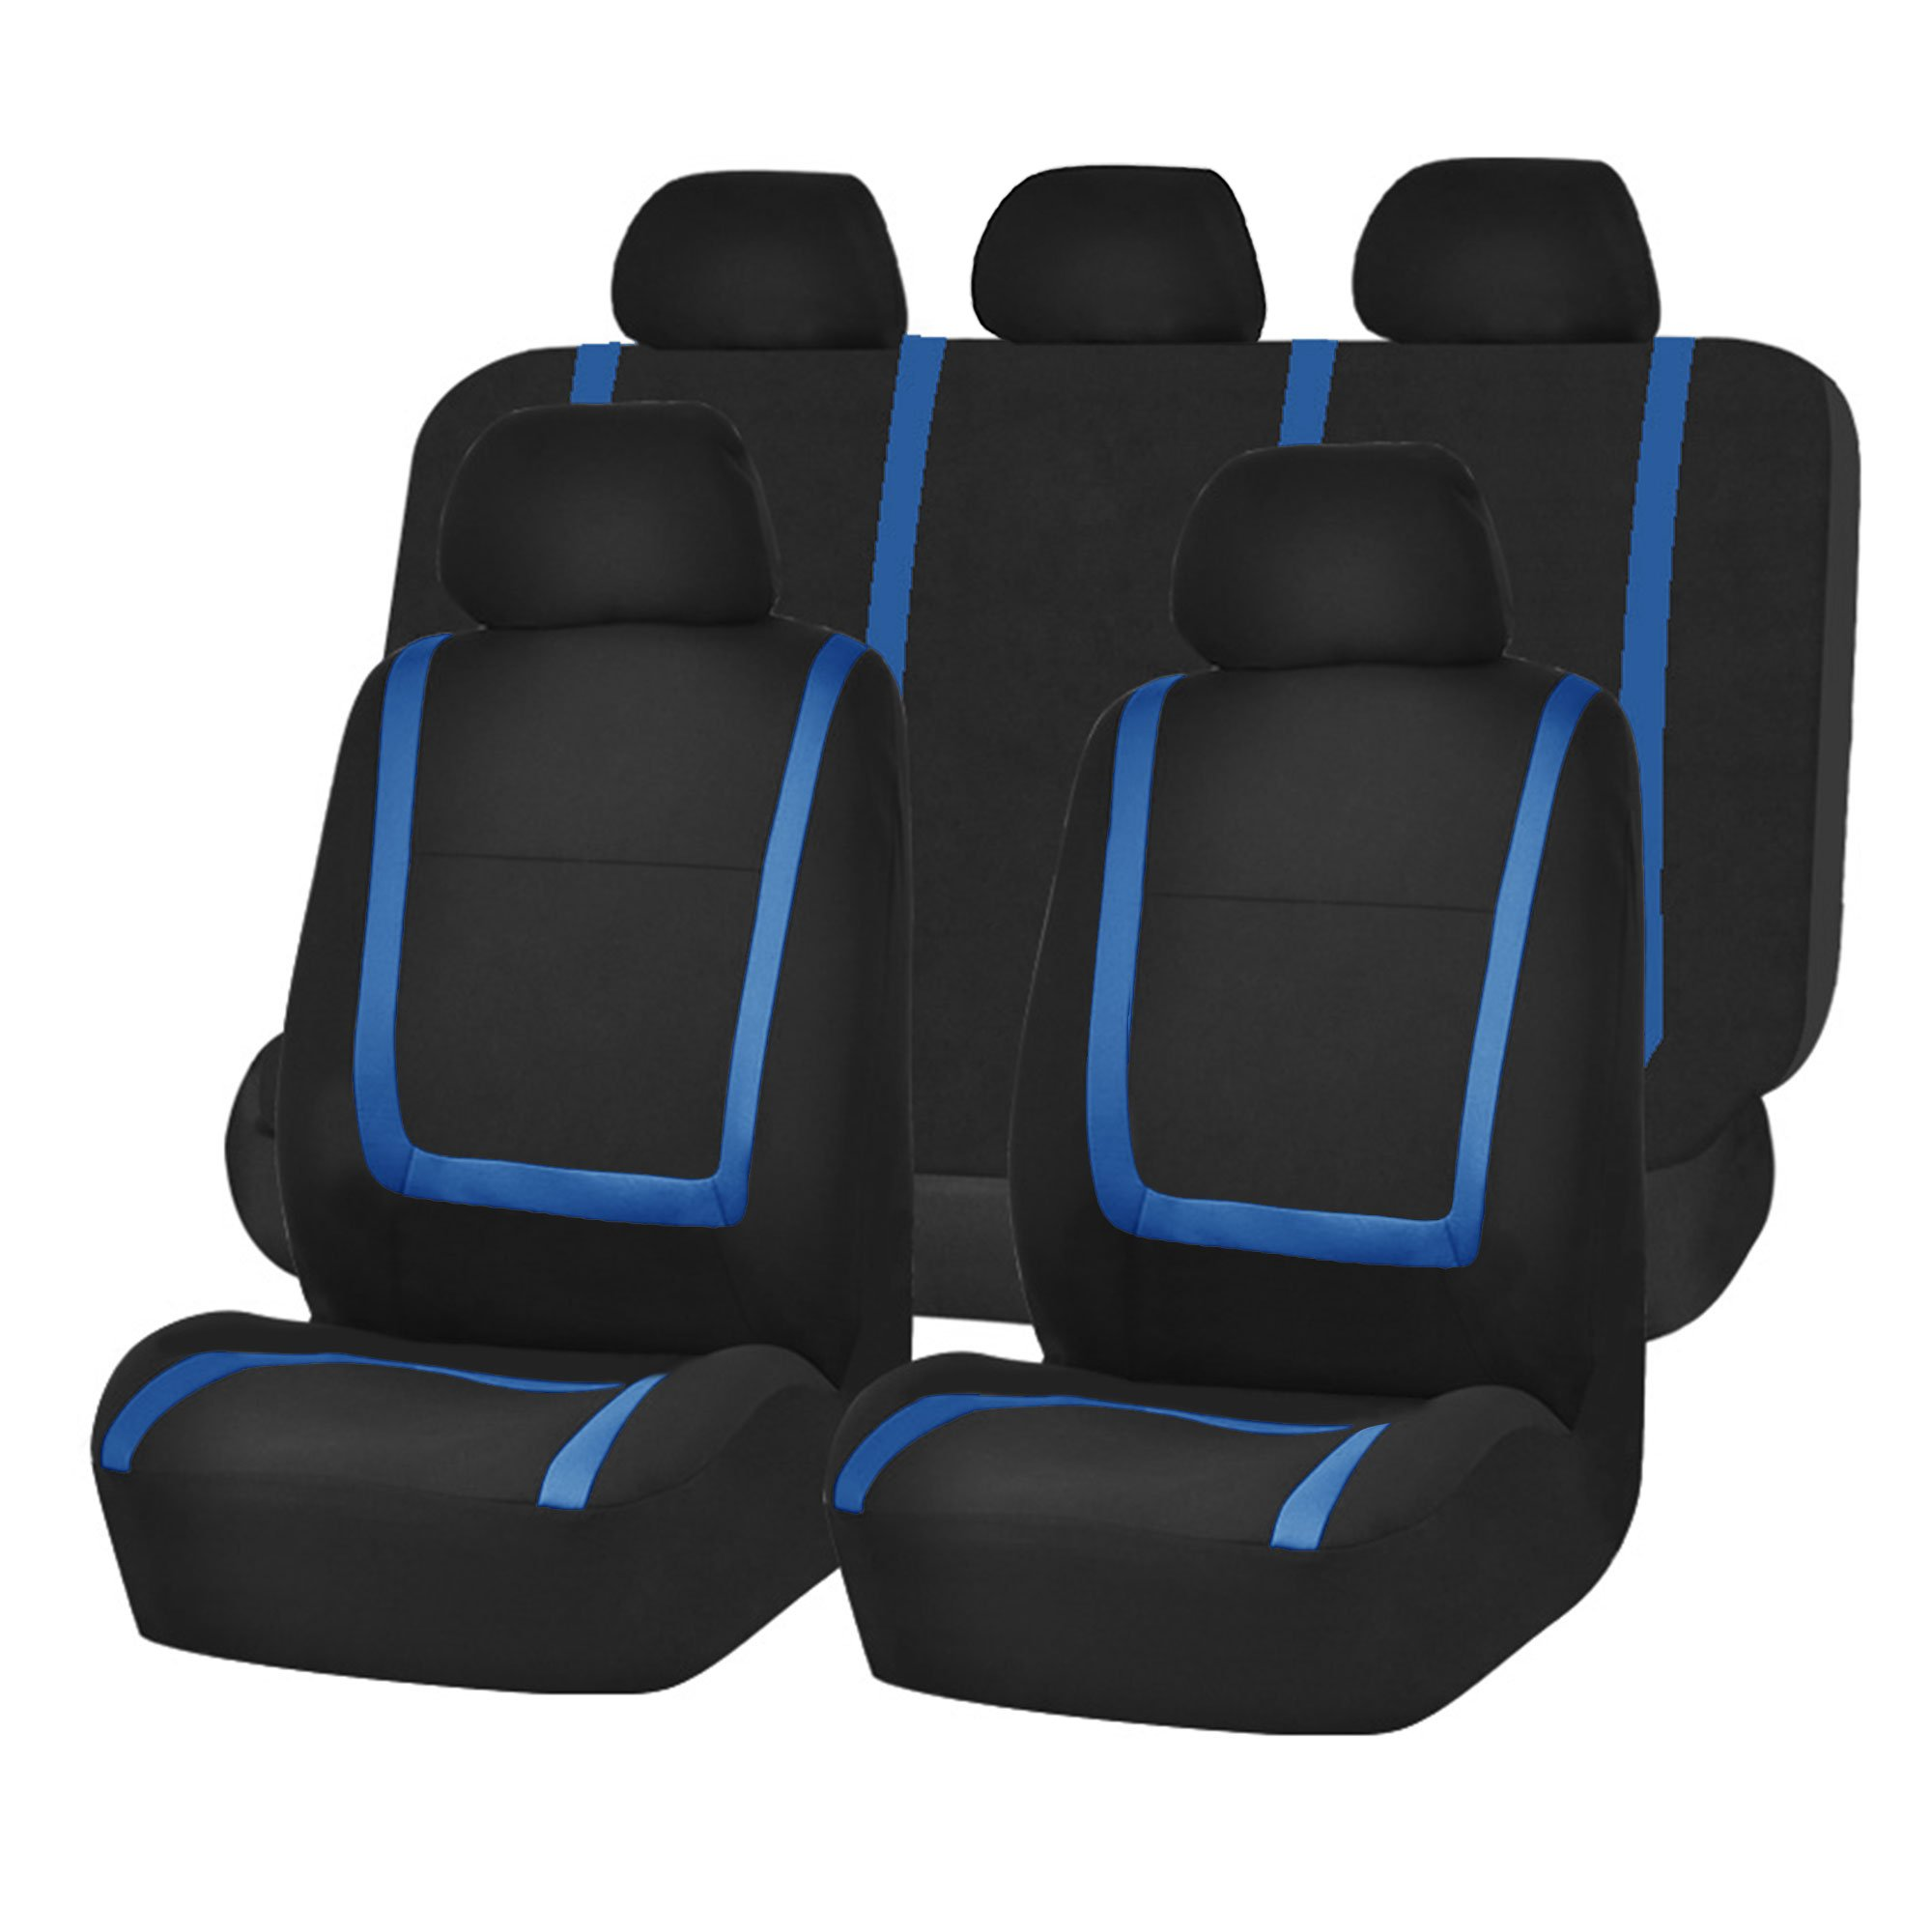 FH Group FH-FB032115 Unique Flat Cloth Seat Covers, Blue/Black Color- Fit Most Car, Truck, Suv, or Van